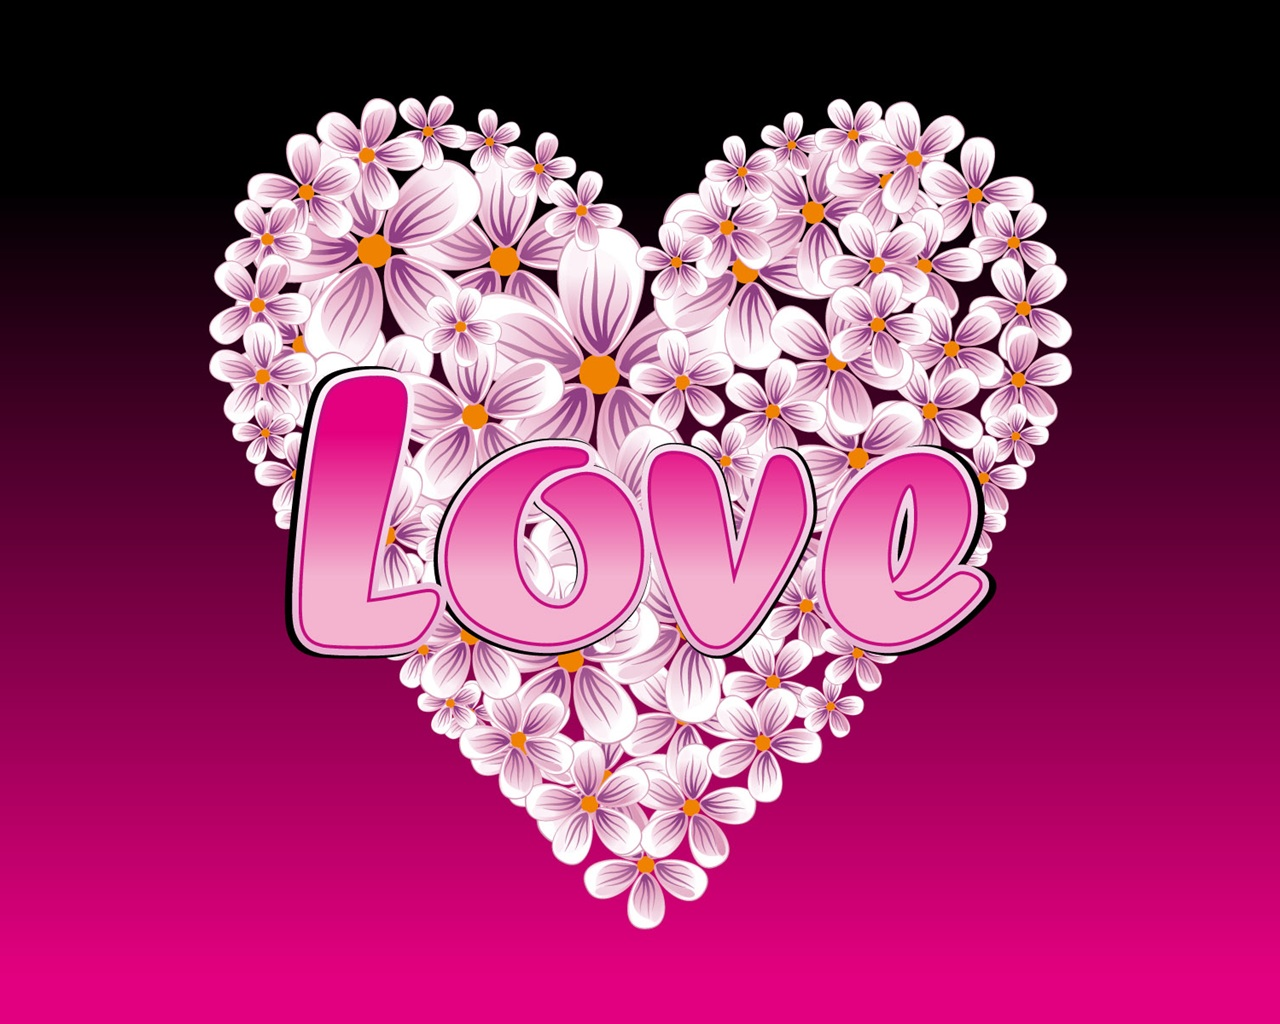 Wallpaper Heart Shaped Flowers Of Love 1920x1200 Hd Picture Image